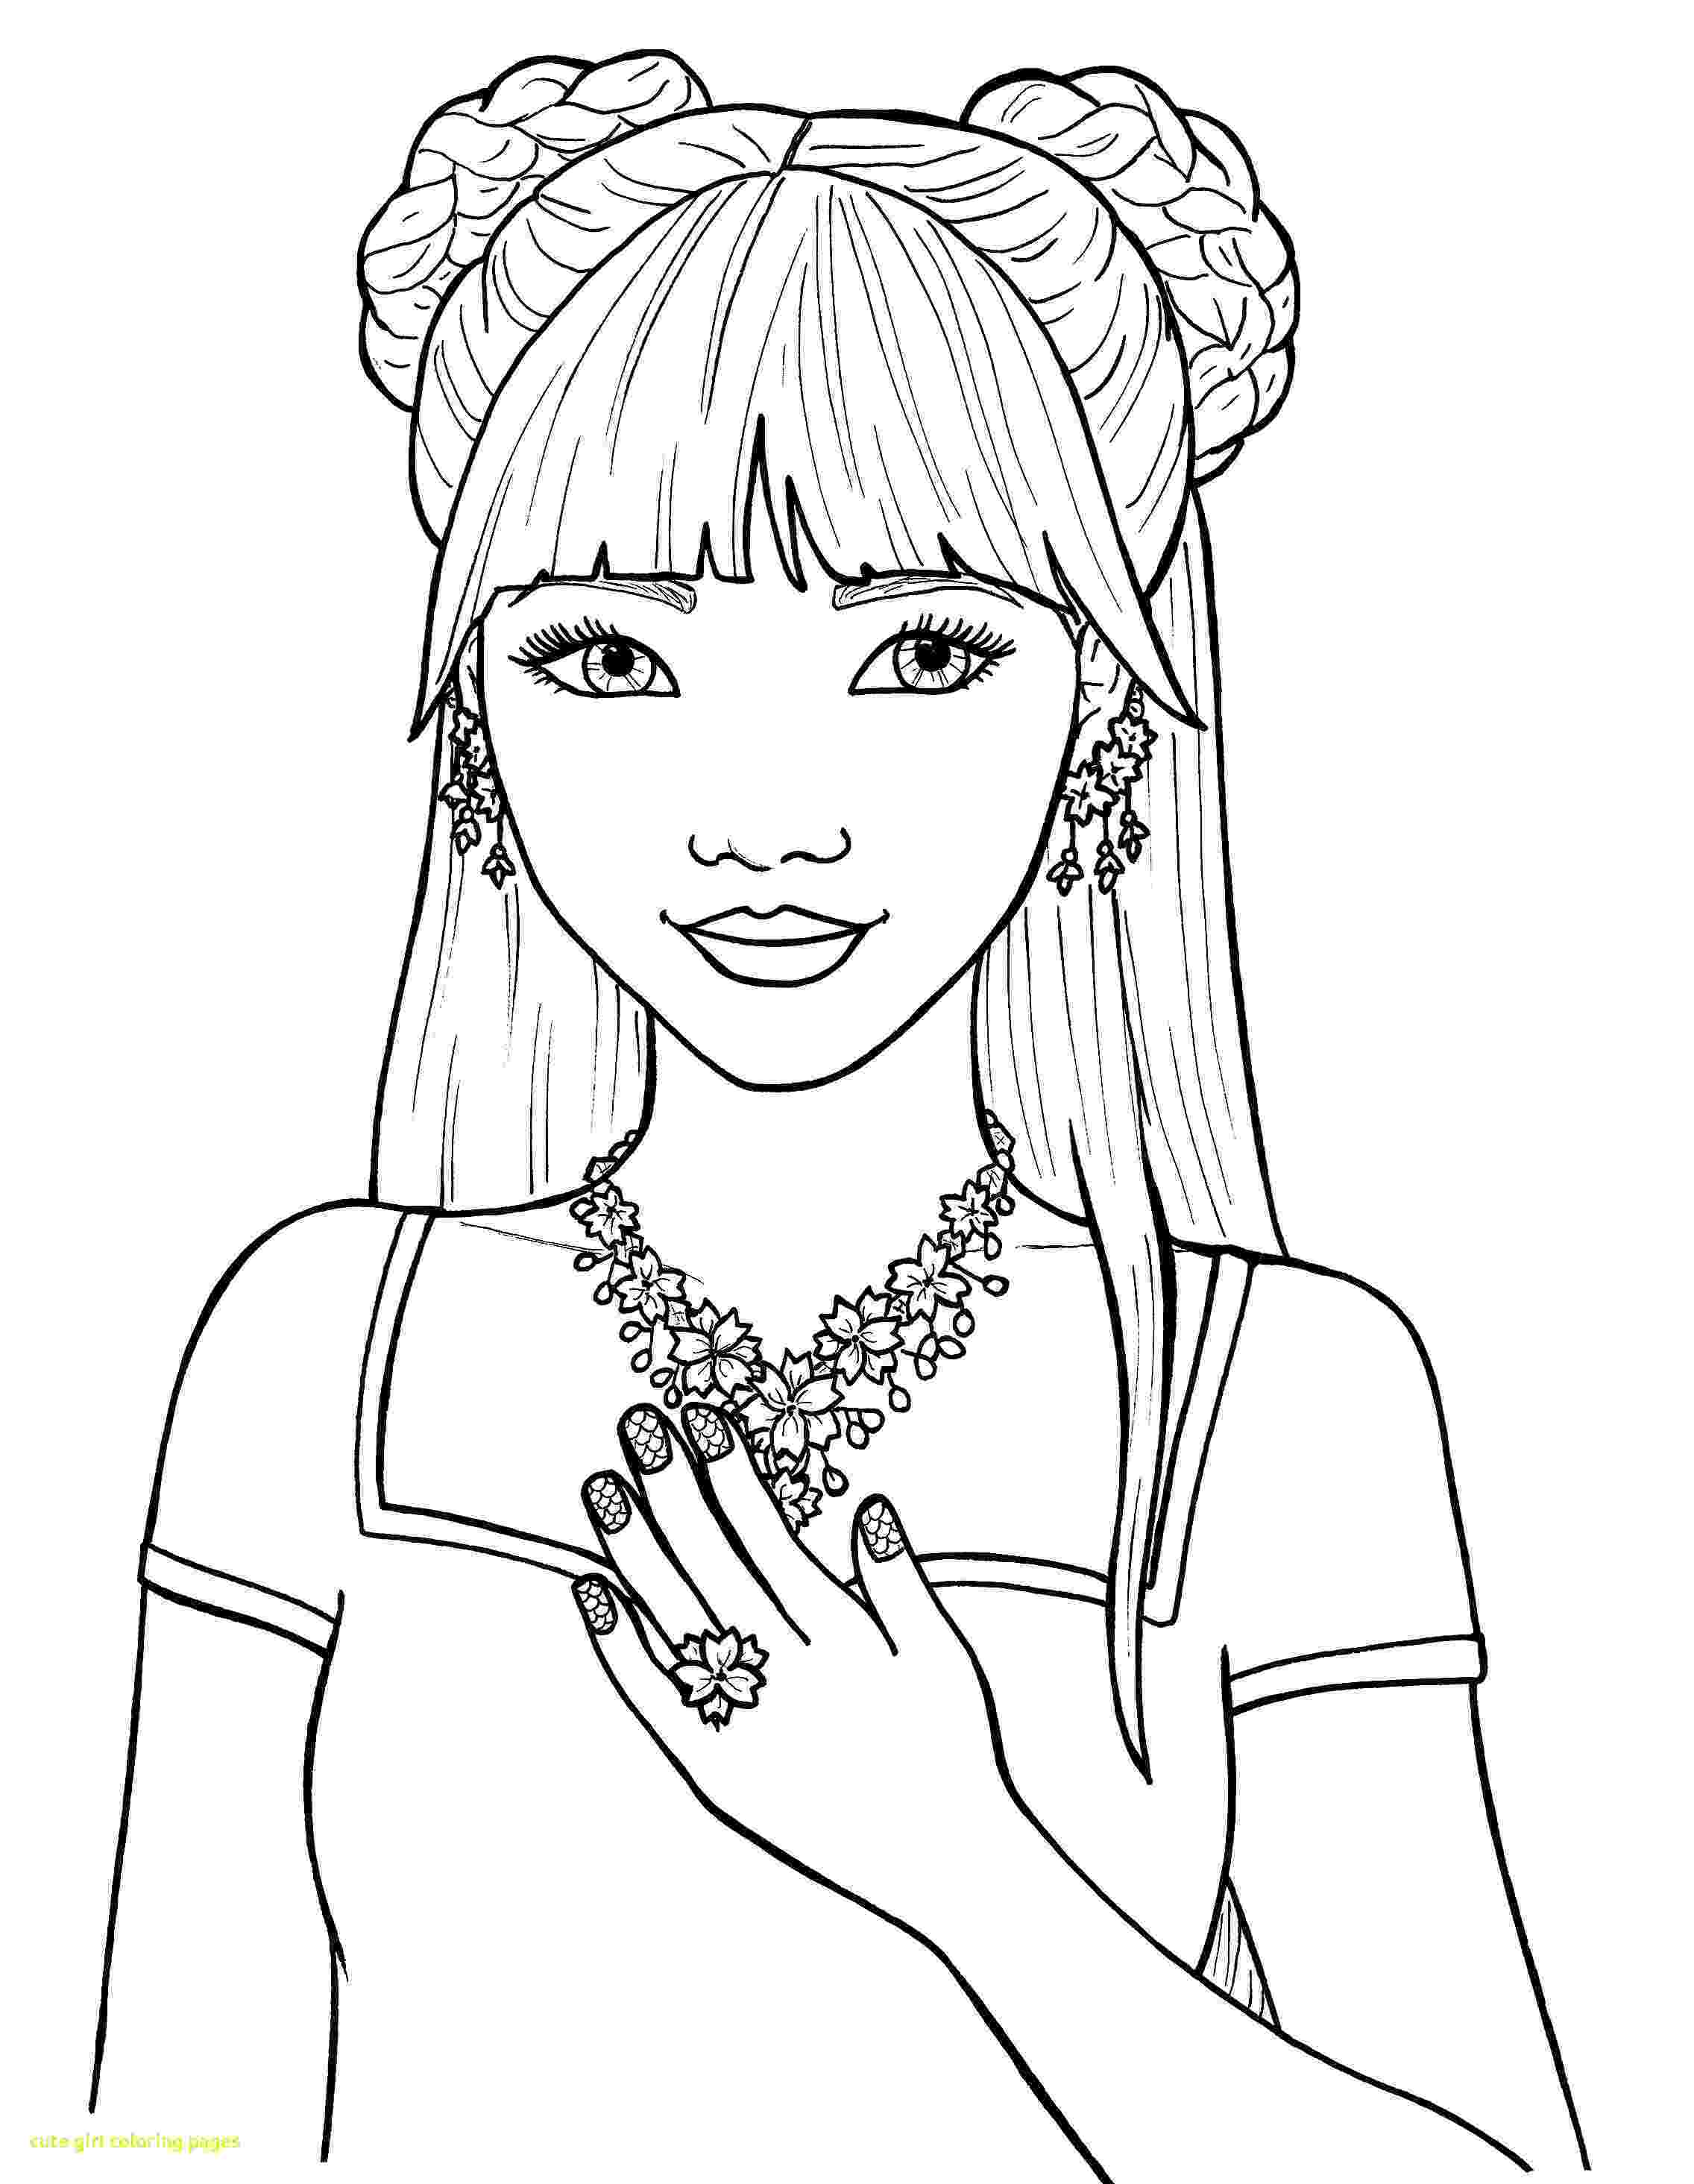 coloring pages for girls printable coloring pages for girls best coloring pages for kids pages printable for girls coloring